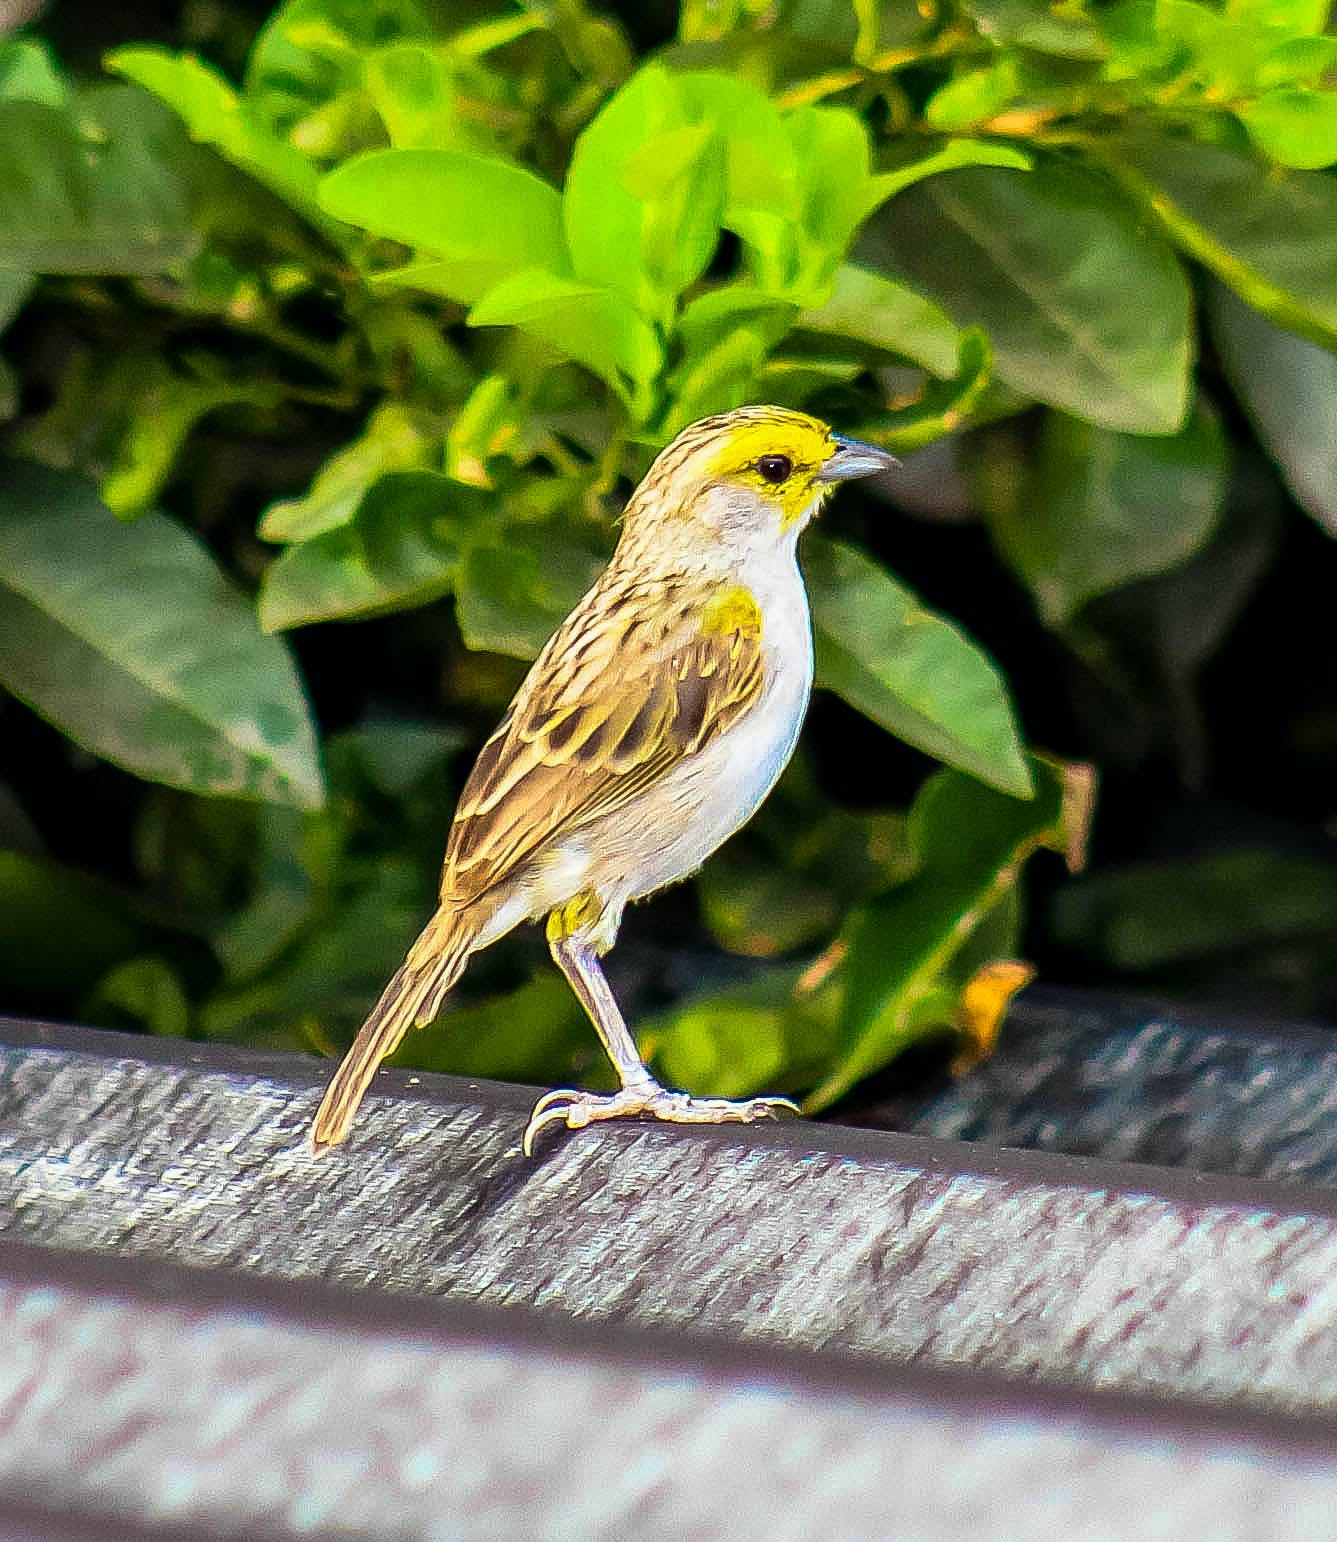 Brown and White Sparrow Bird